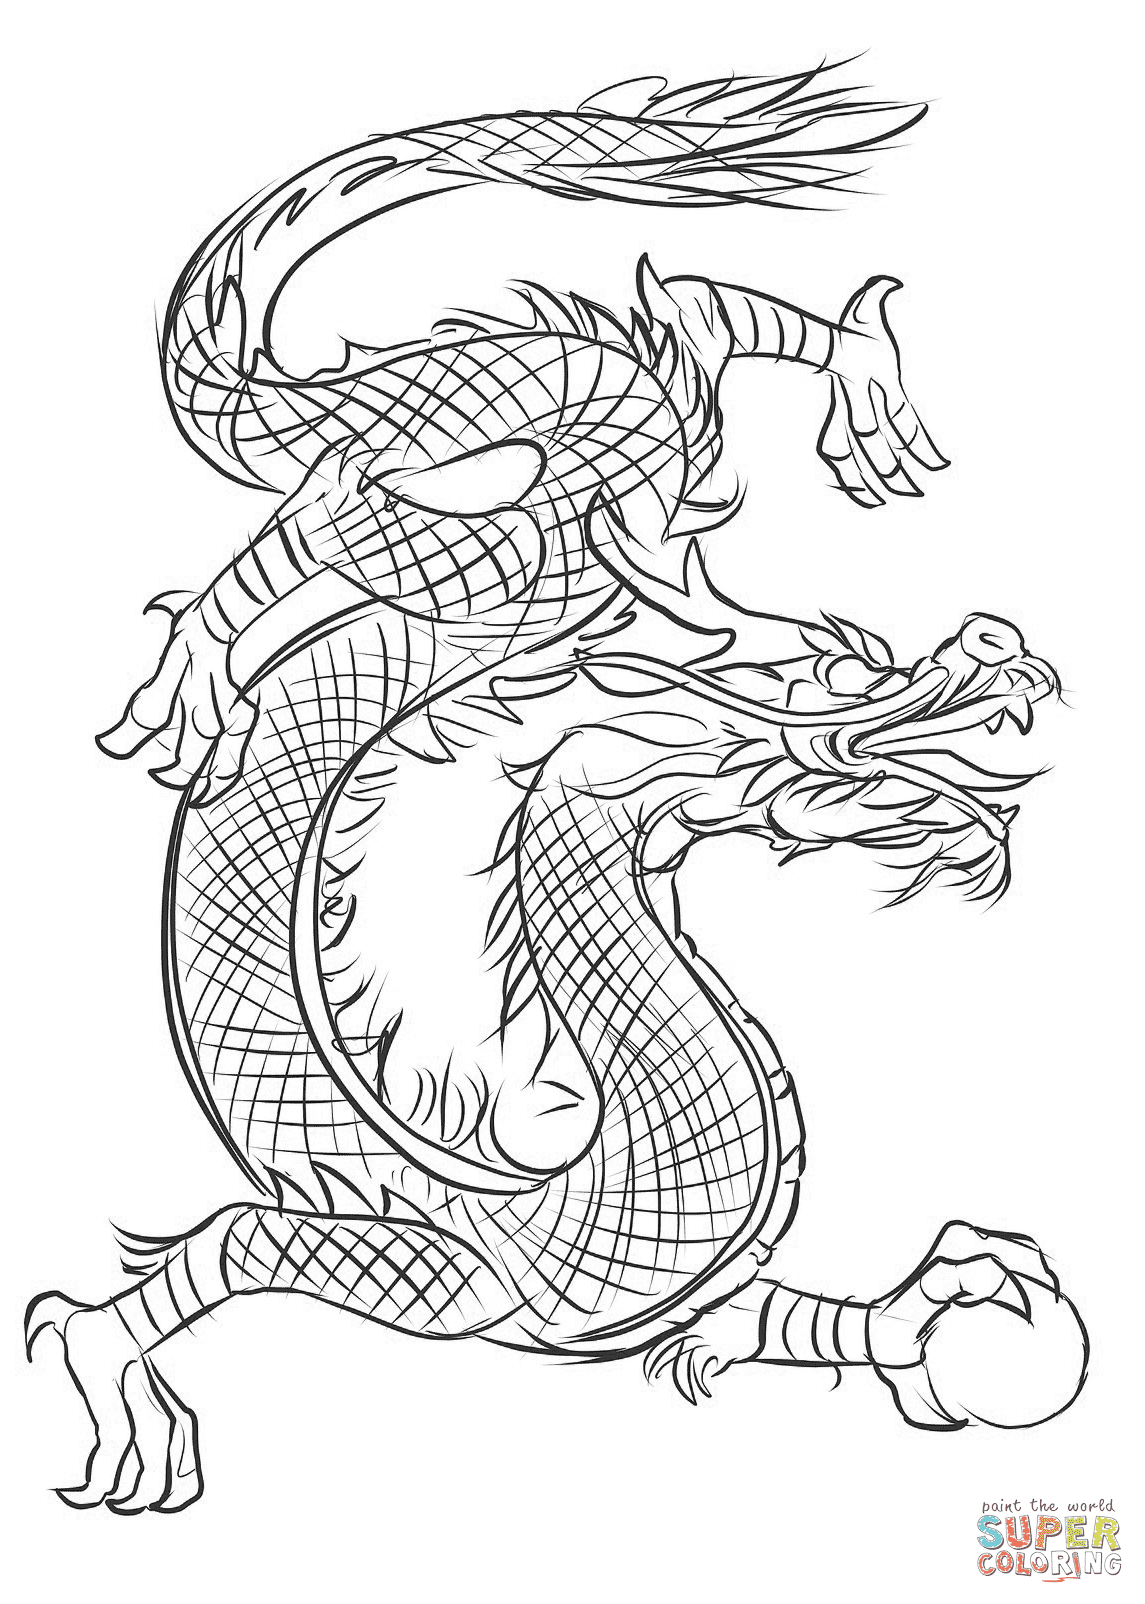 Asian Dragon coloring page | Free Printable Coloring Pages